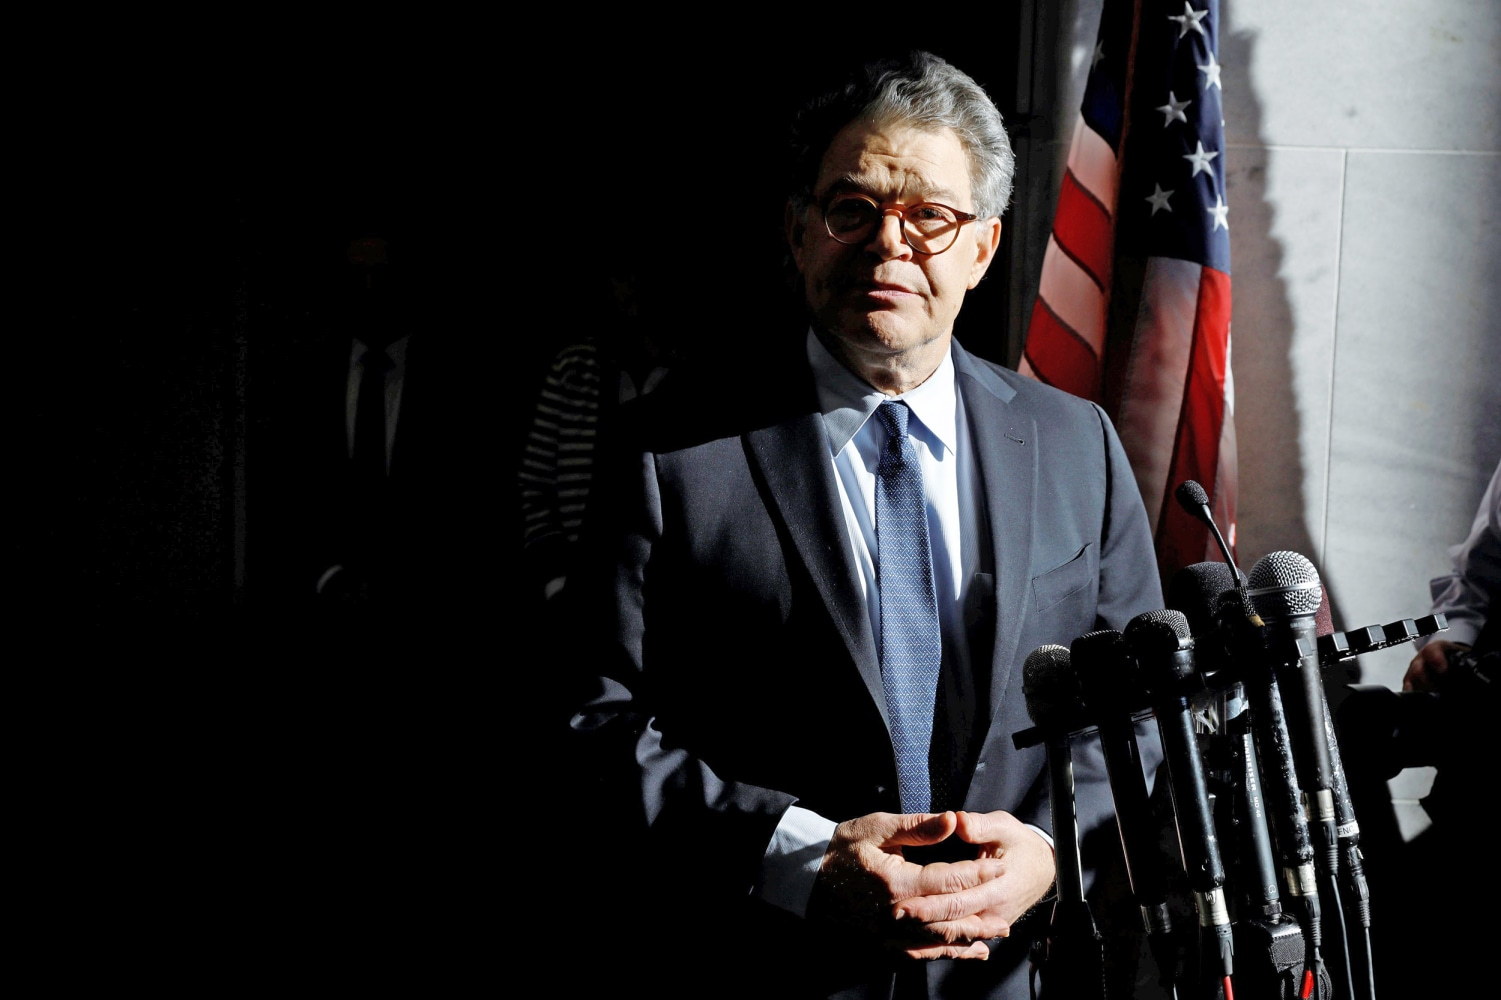 Democrat Franken says goodbye in Minnesota